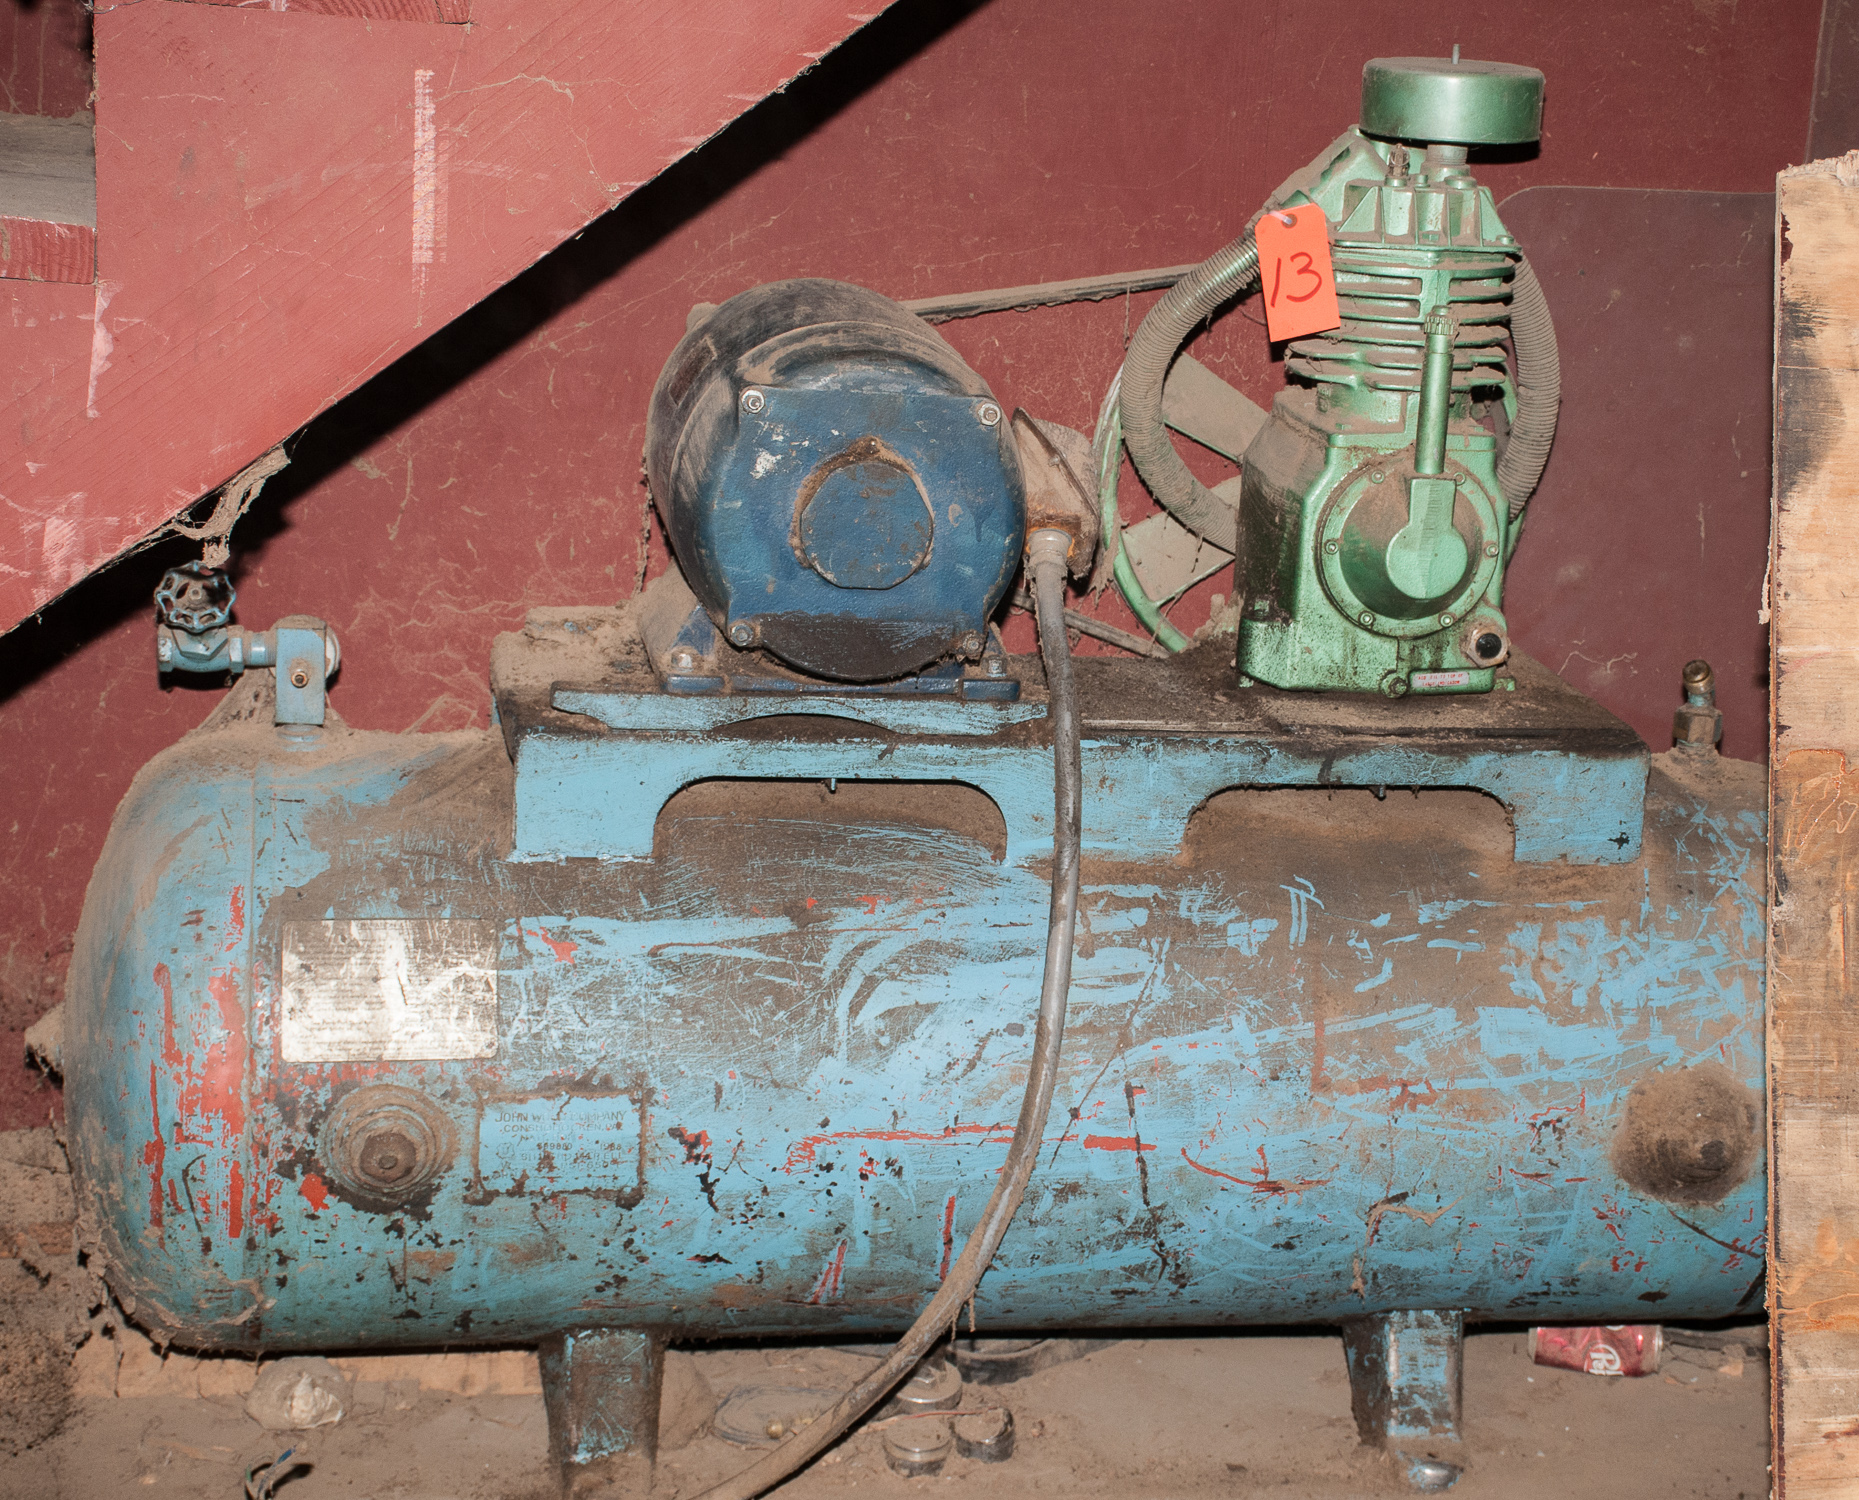 Air Compressor Approx 30 Gal. Pump May need Work, 10 HP, 220v In storage